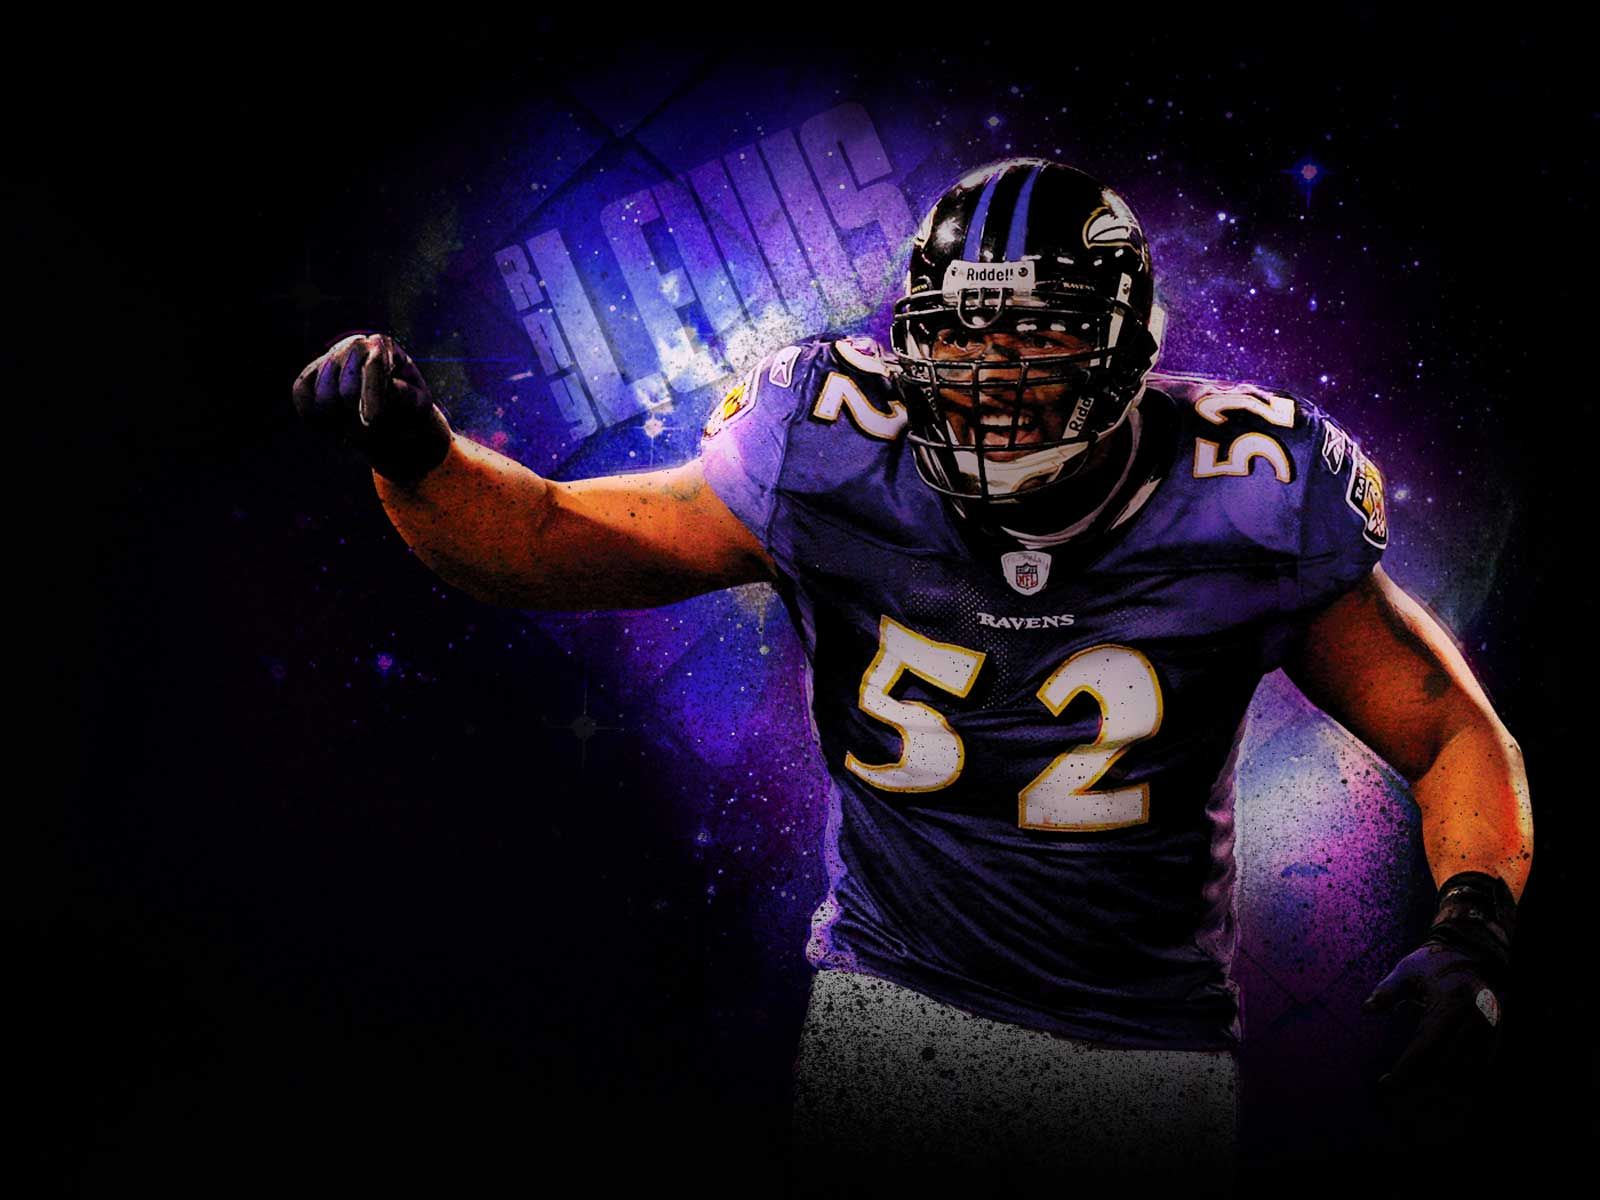 BALTIMORE PLAYER 2013 SUPERBOWL PLAYER RAY LEWIS http